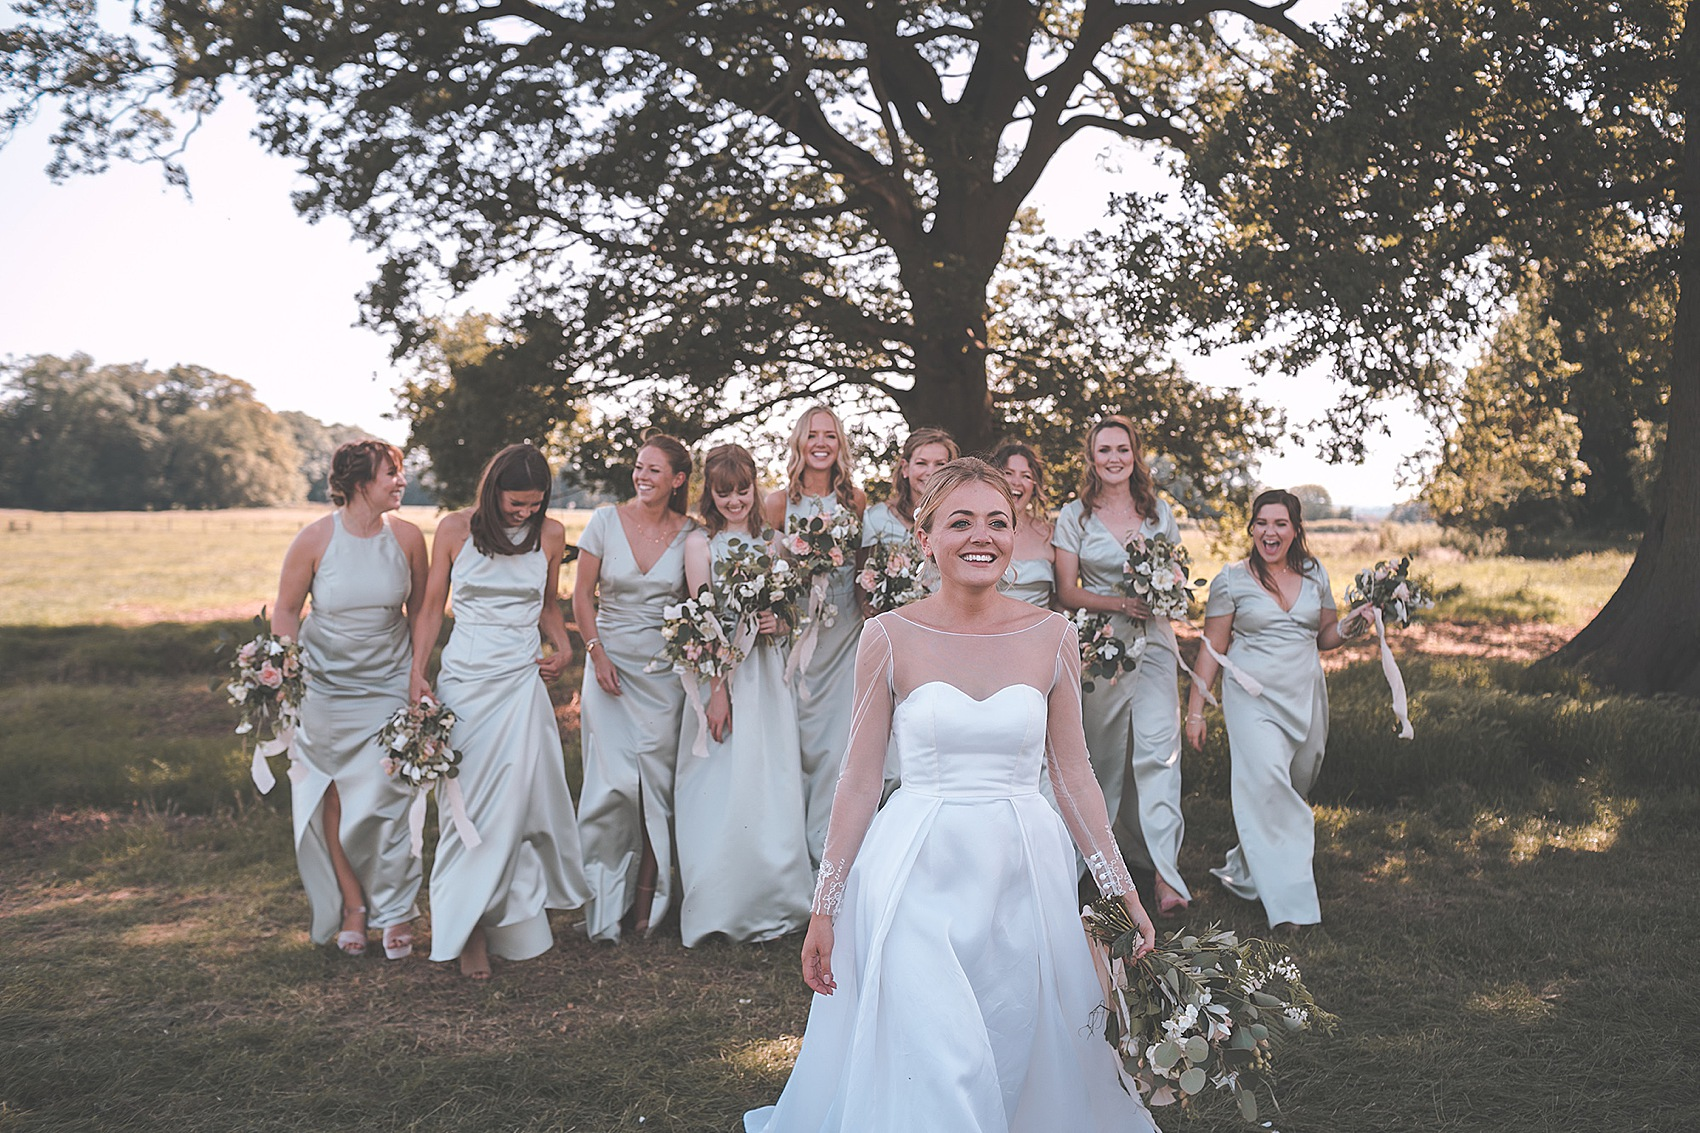 A Bride Her Maids In Sewn Right Dresses For A Classic English